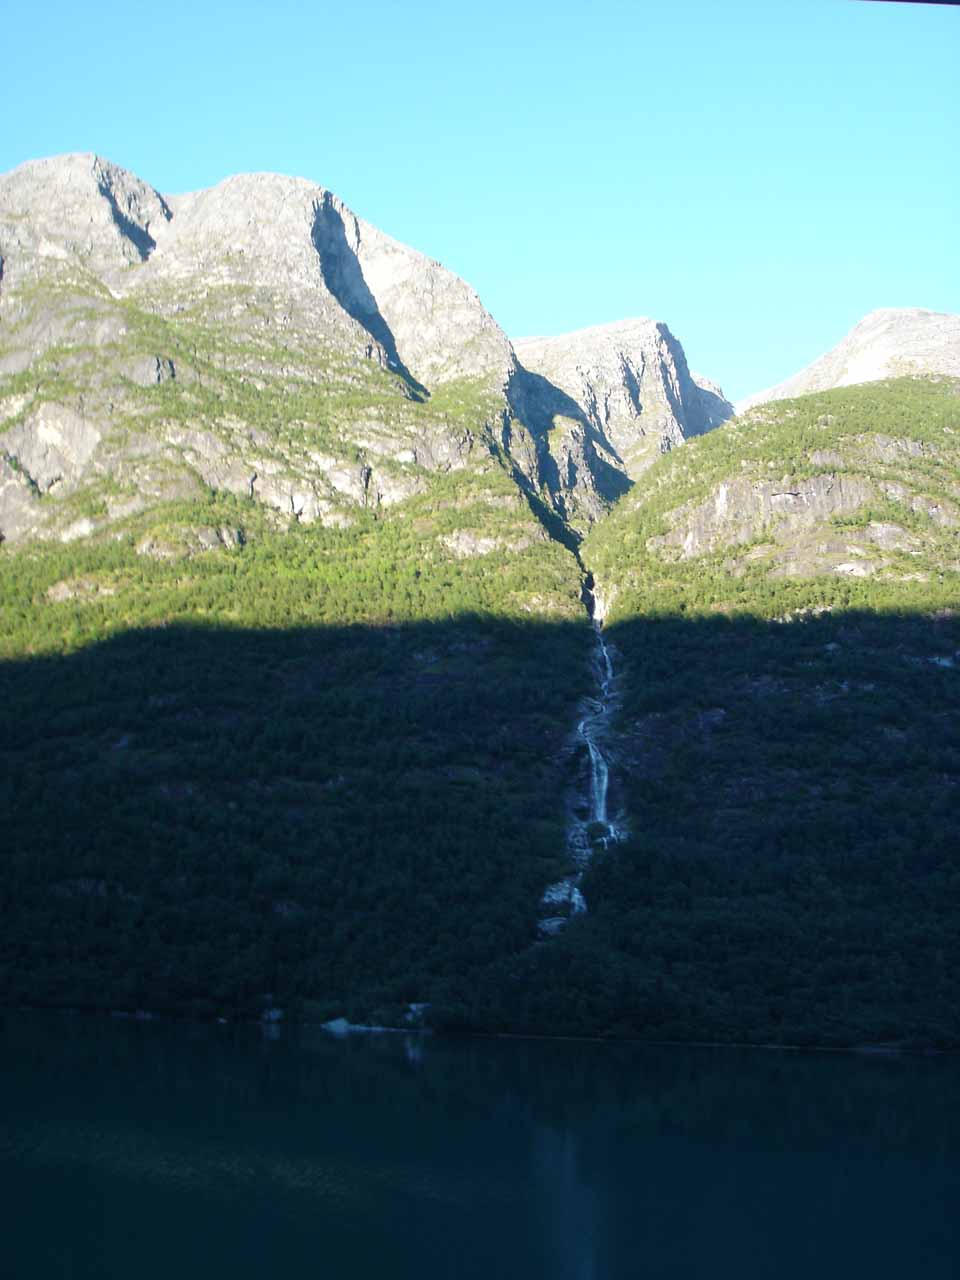 Looking back across the lake Oldevatnet towards the east-facing cliff, this thin waterfall might be on Nesleelva so it might be called Neslefossen